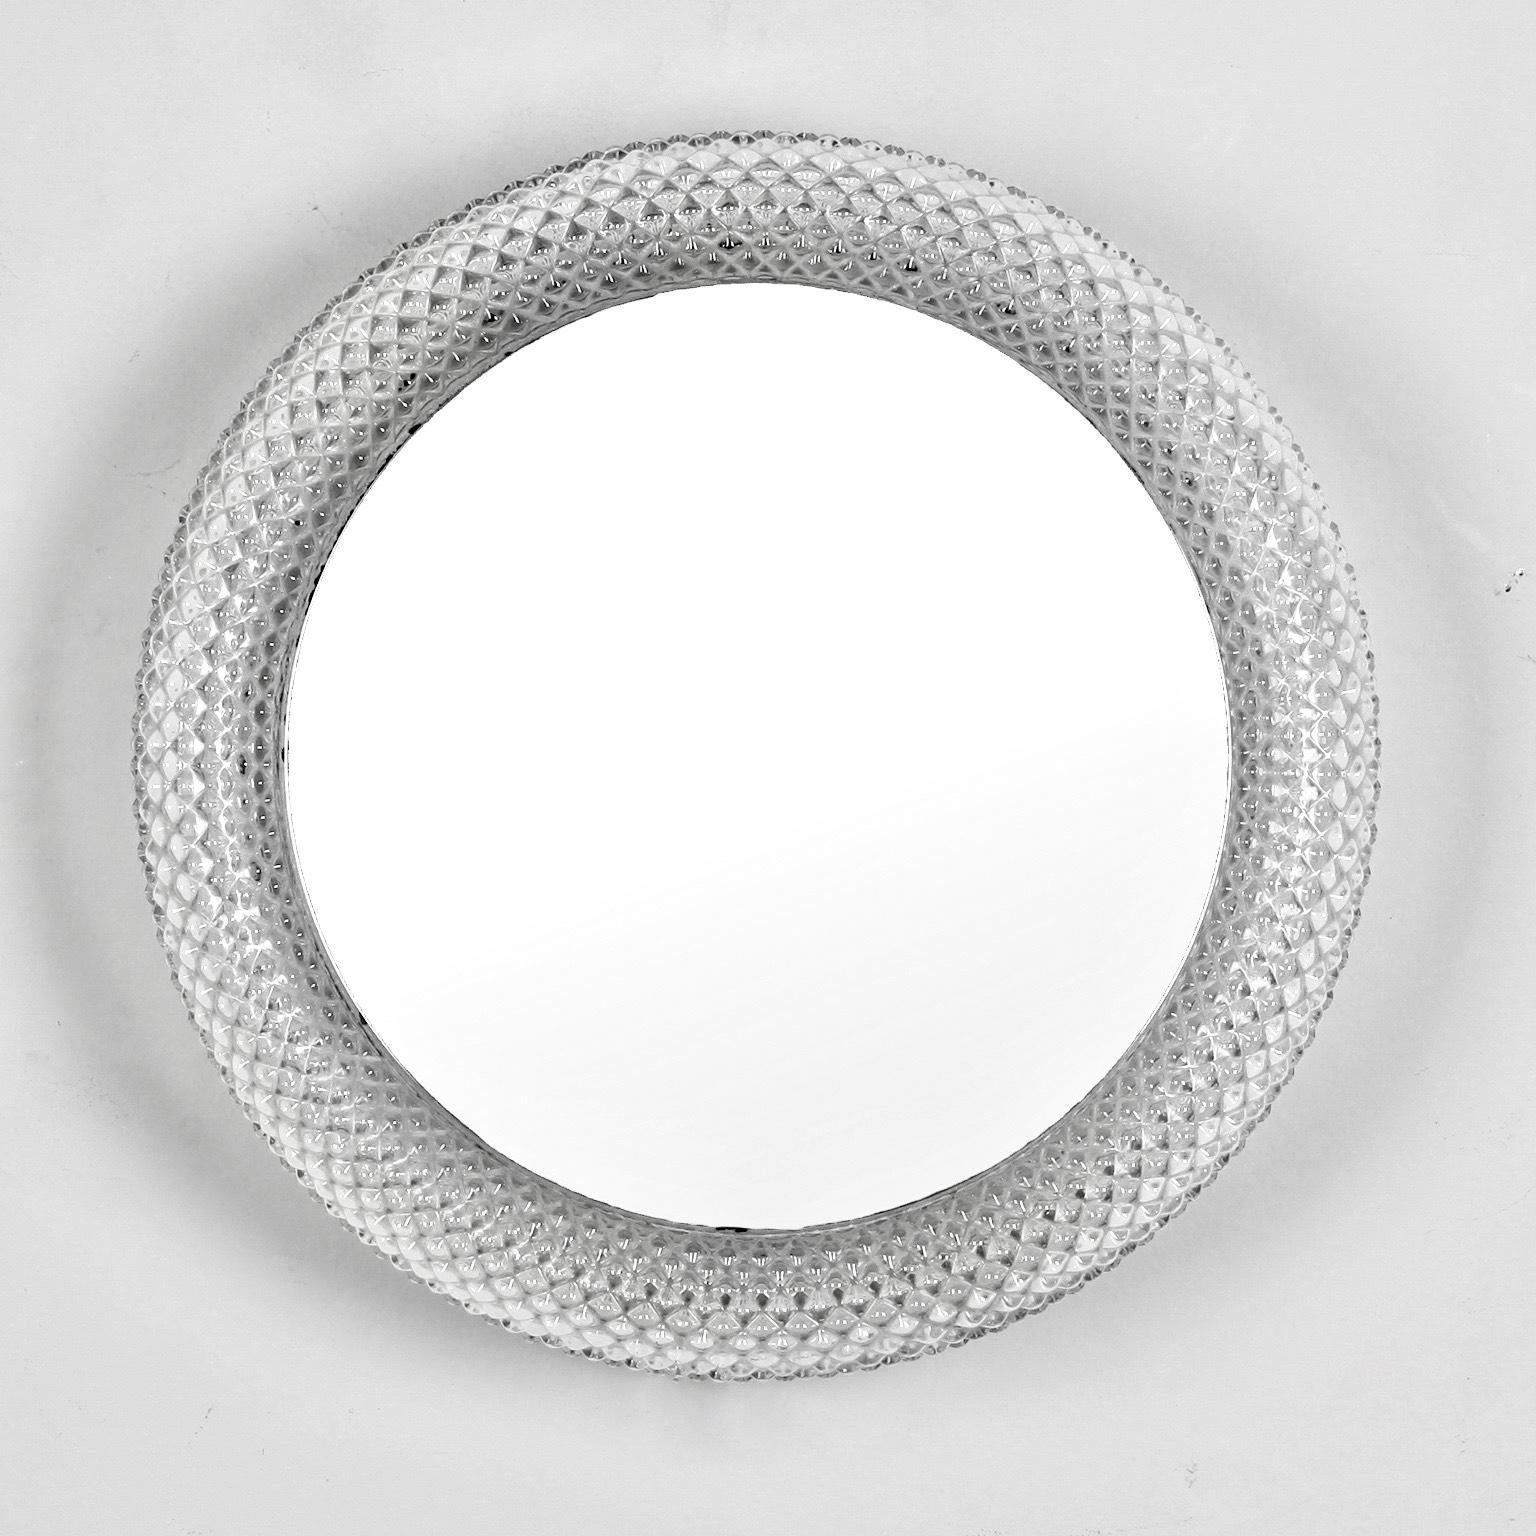 midcentury round clear acrylic frame mirror light image 3 of 5